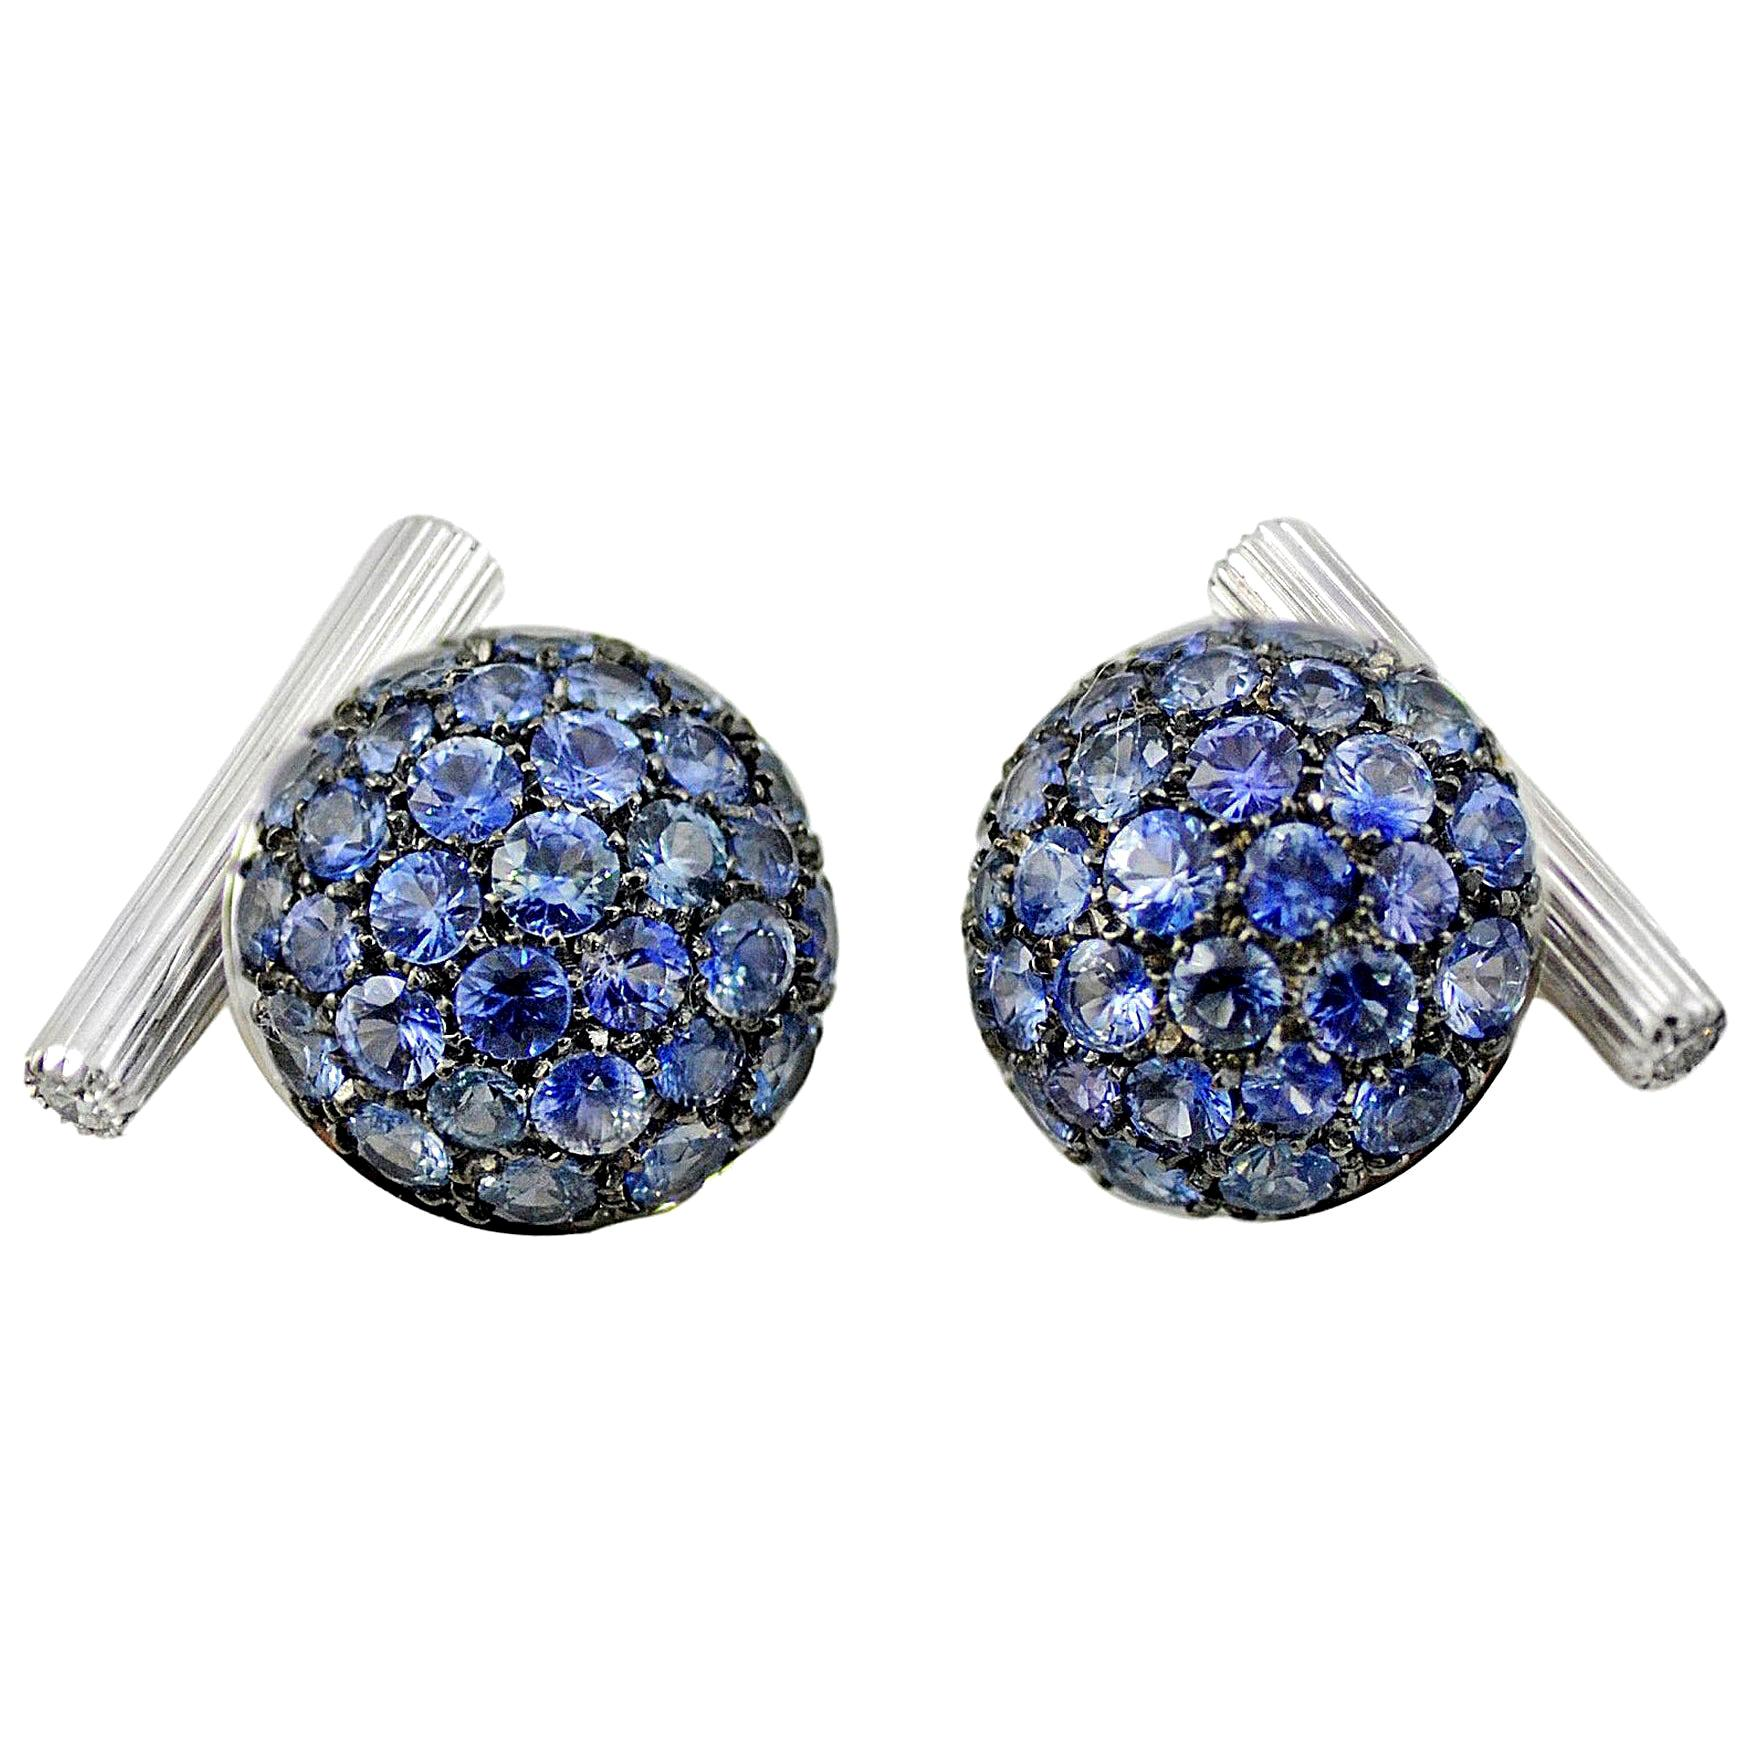 Blue Sapphires Diamond 18 KT White Gold Boule Made in Italy Cufflinks